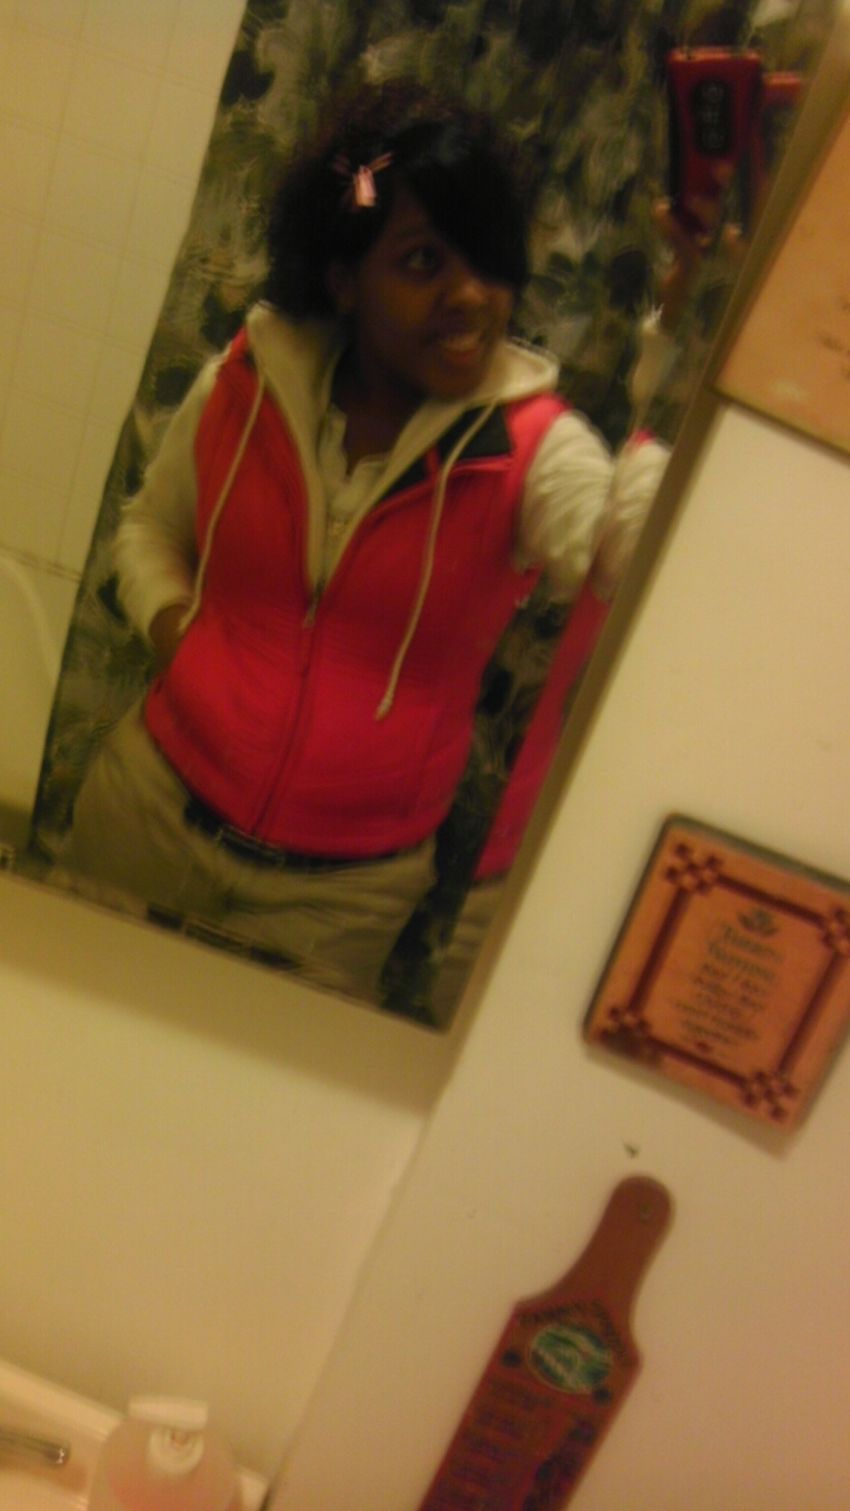 tHE OtHER DAY ! OMW tU SCHOOl